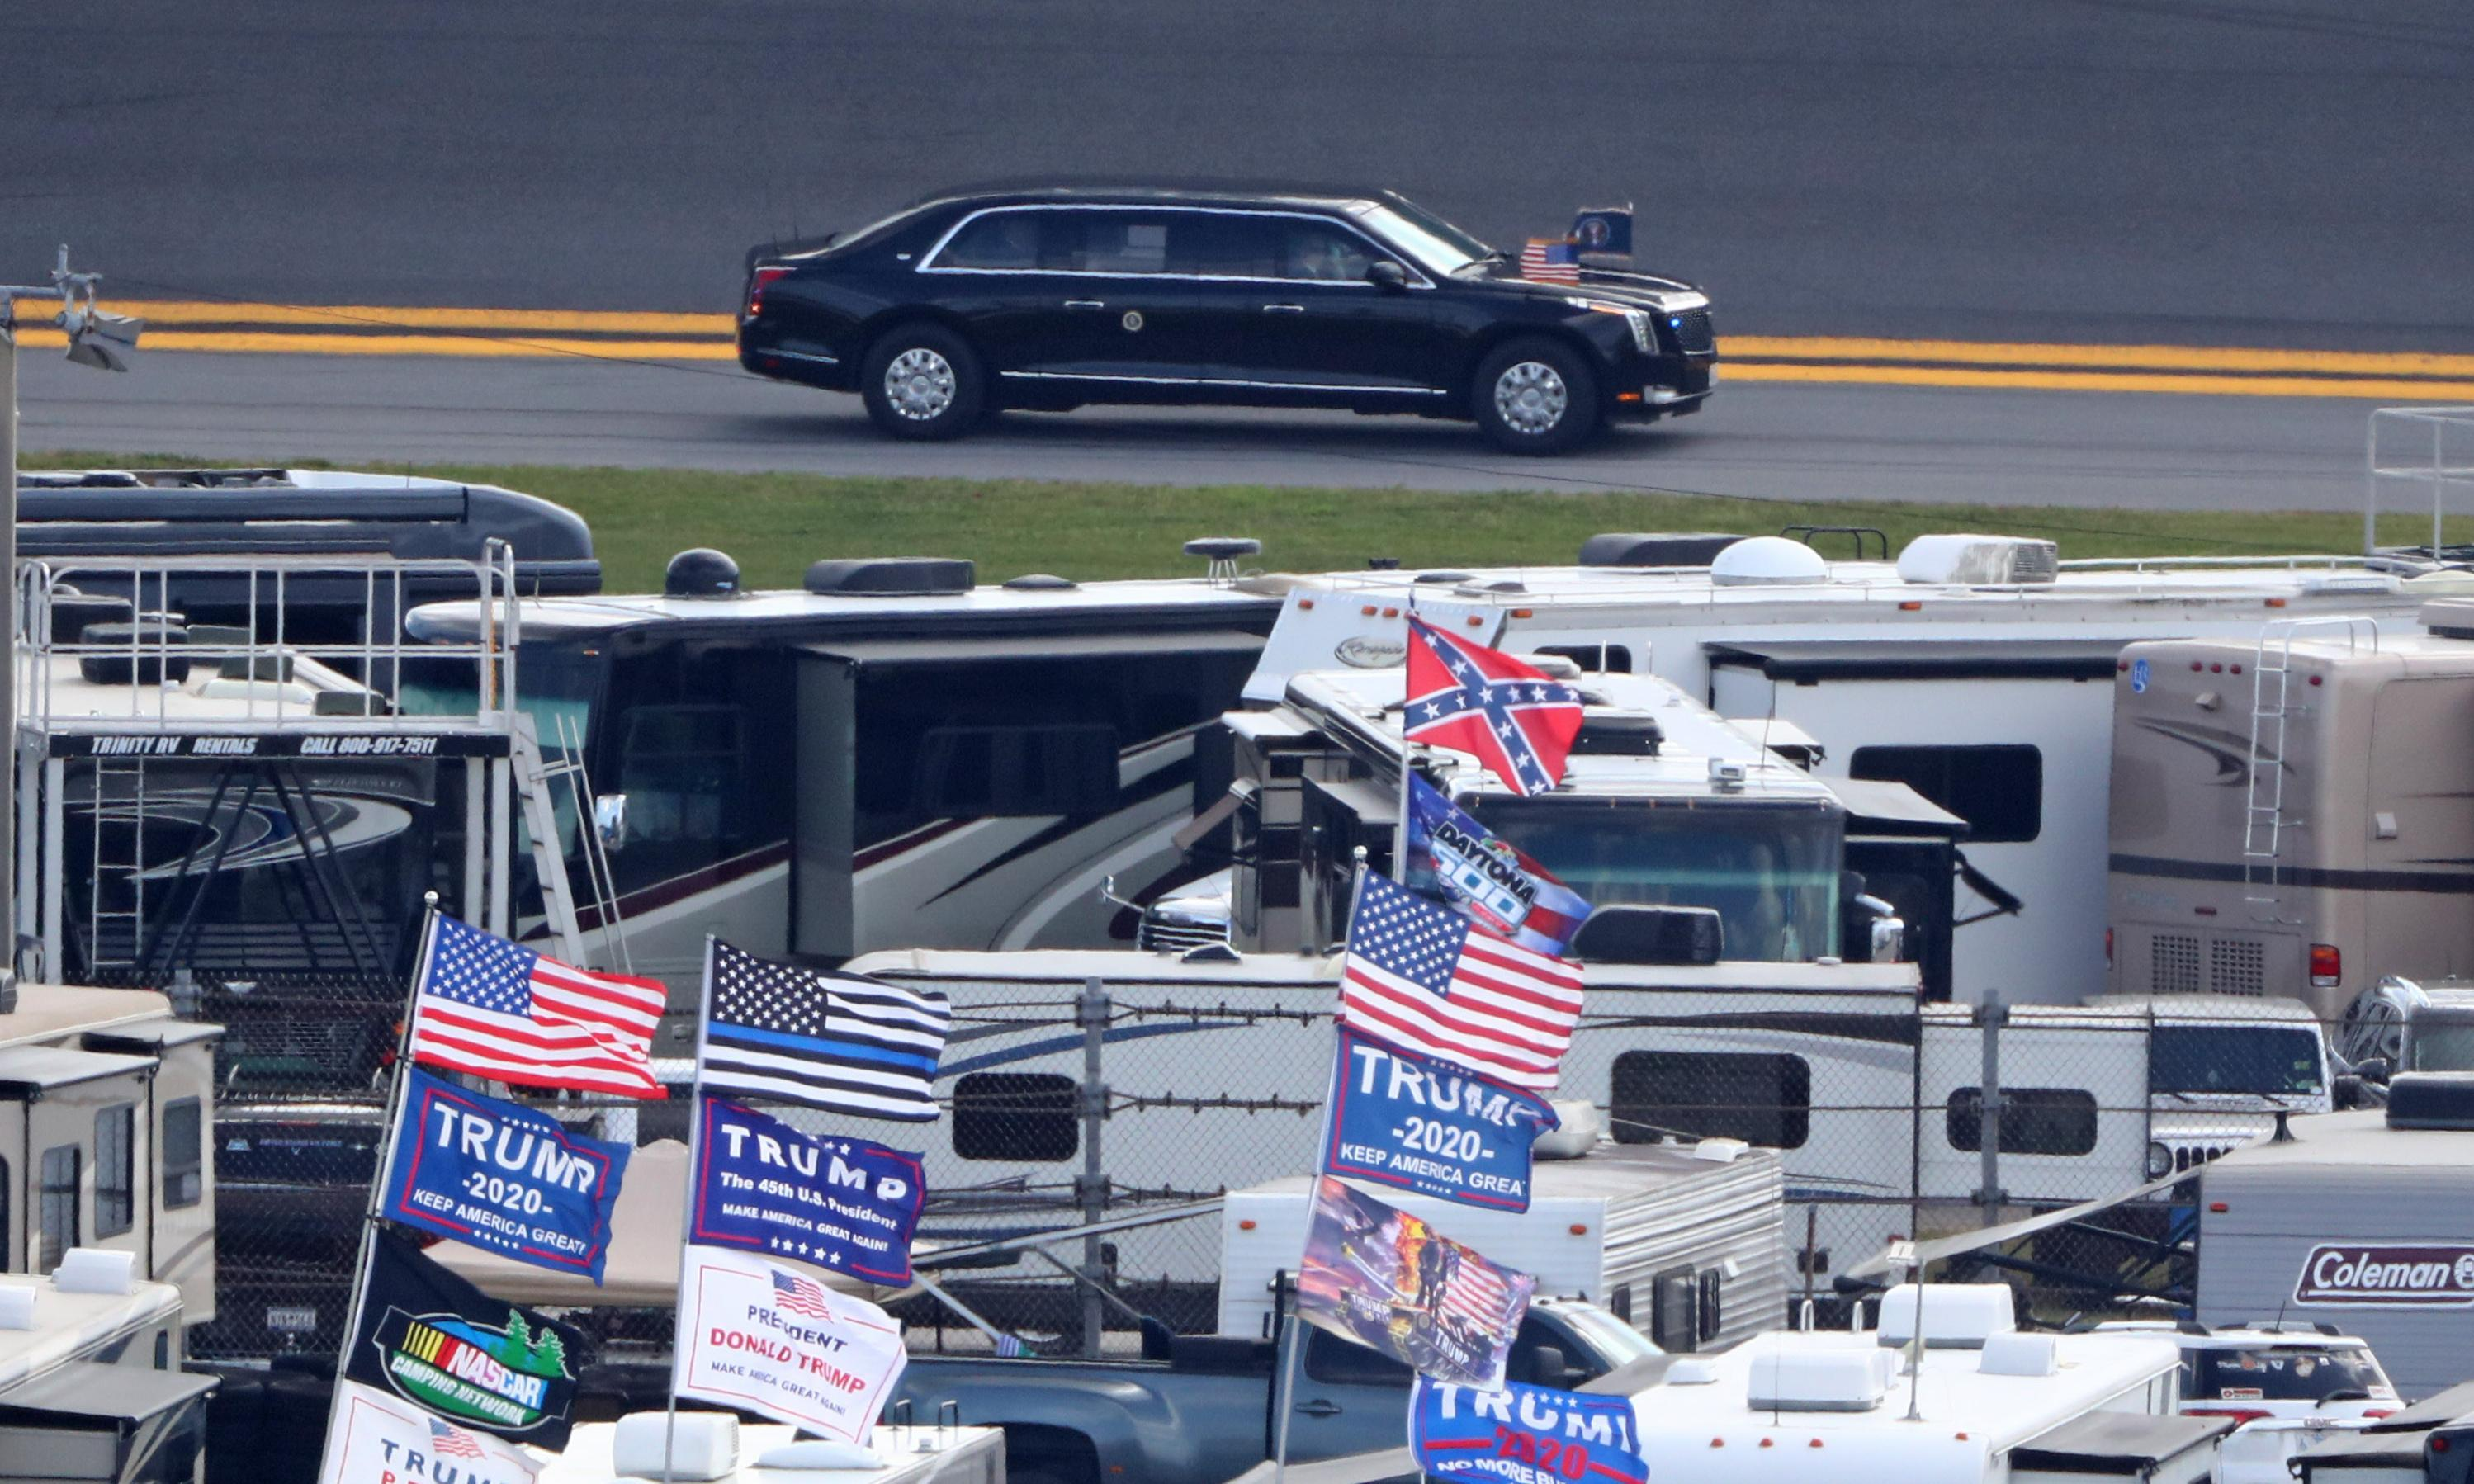 Trump takes lap of Daytona track in armored presidential limo 'the Beast'